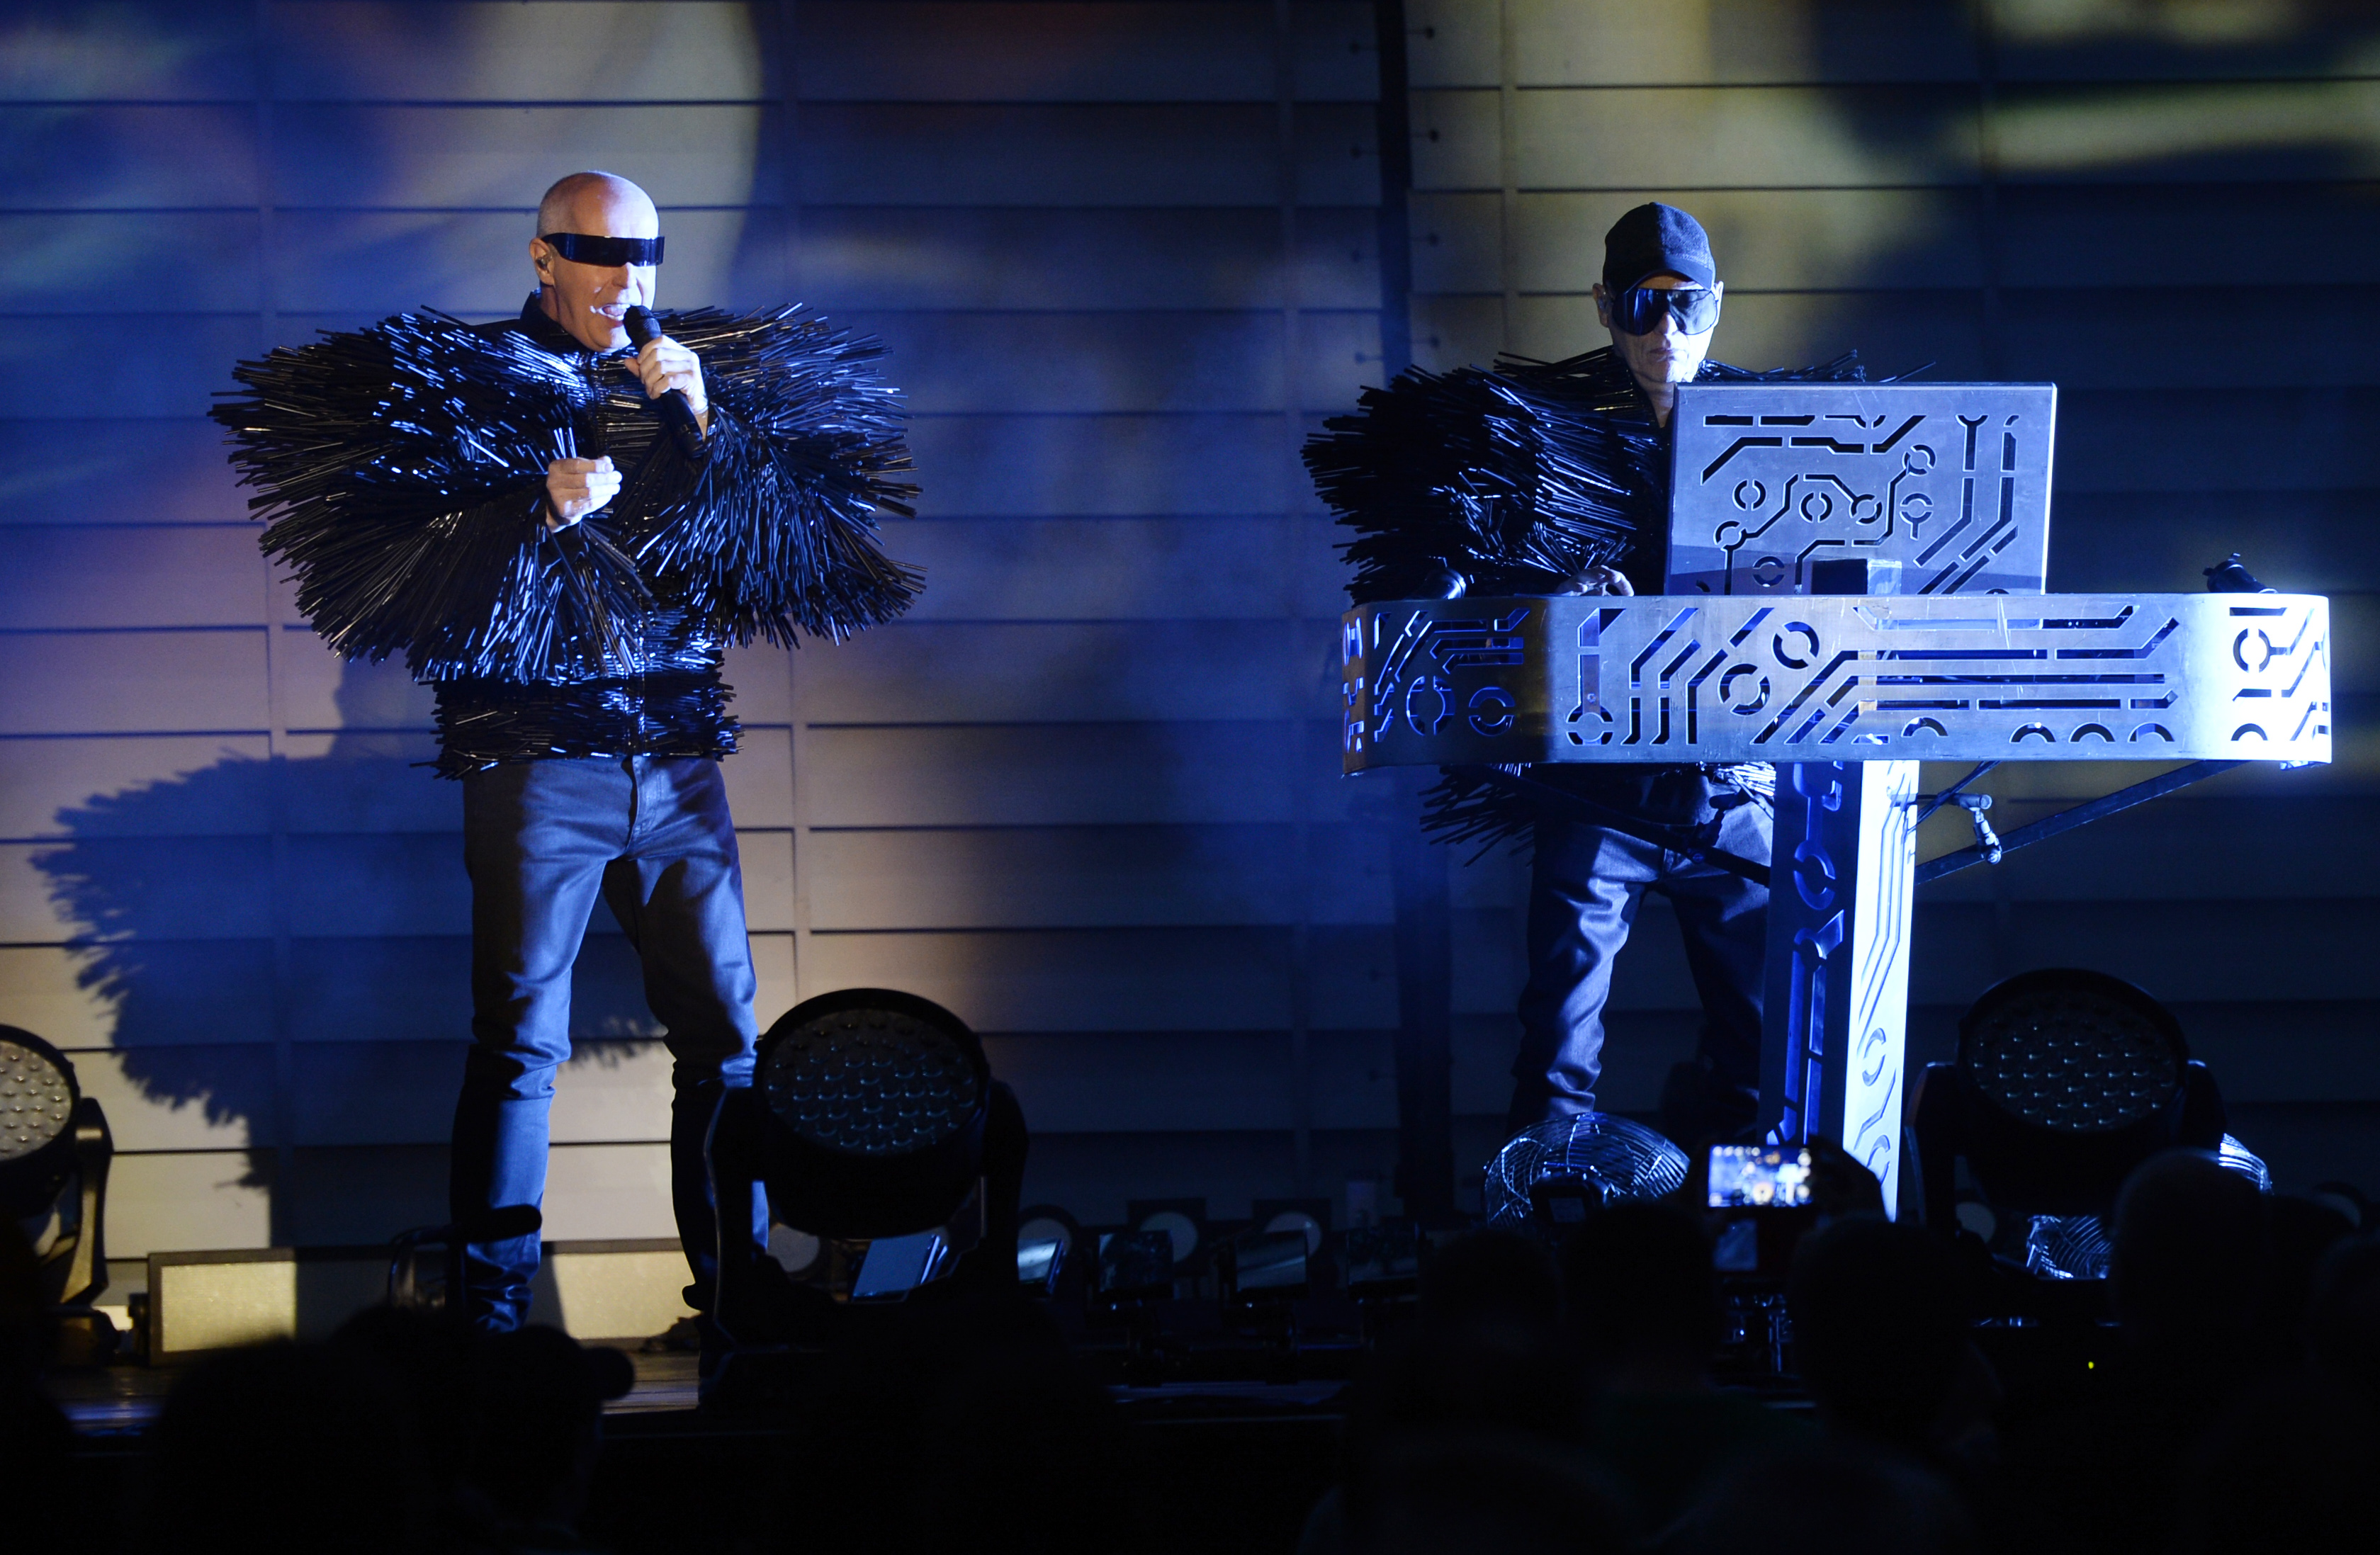 British singer Neil Tennant and keyboard player Christopher Lowe of electronic pop duo Pet Shop Boys perform during their concert  at the Live at Sunset festival, in Zurich, Switzerland, July 14 2014.